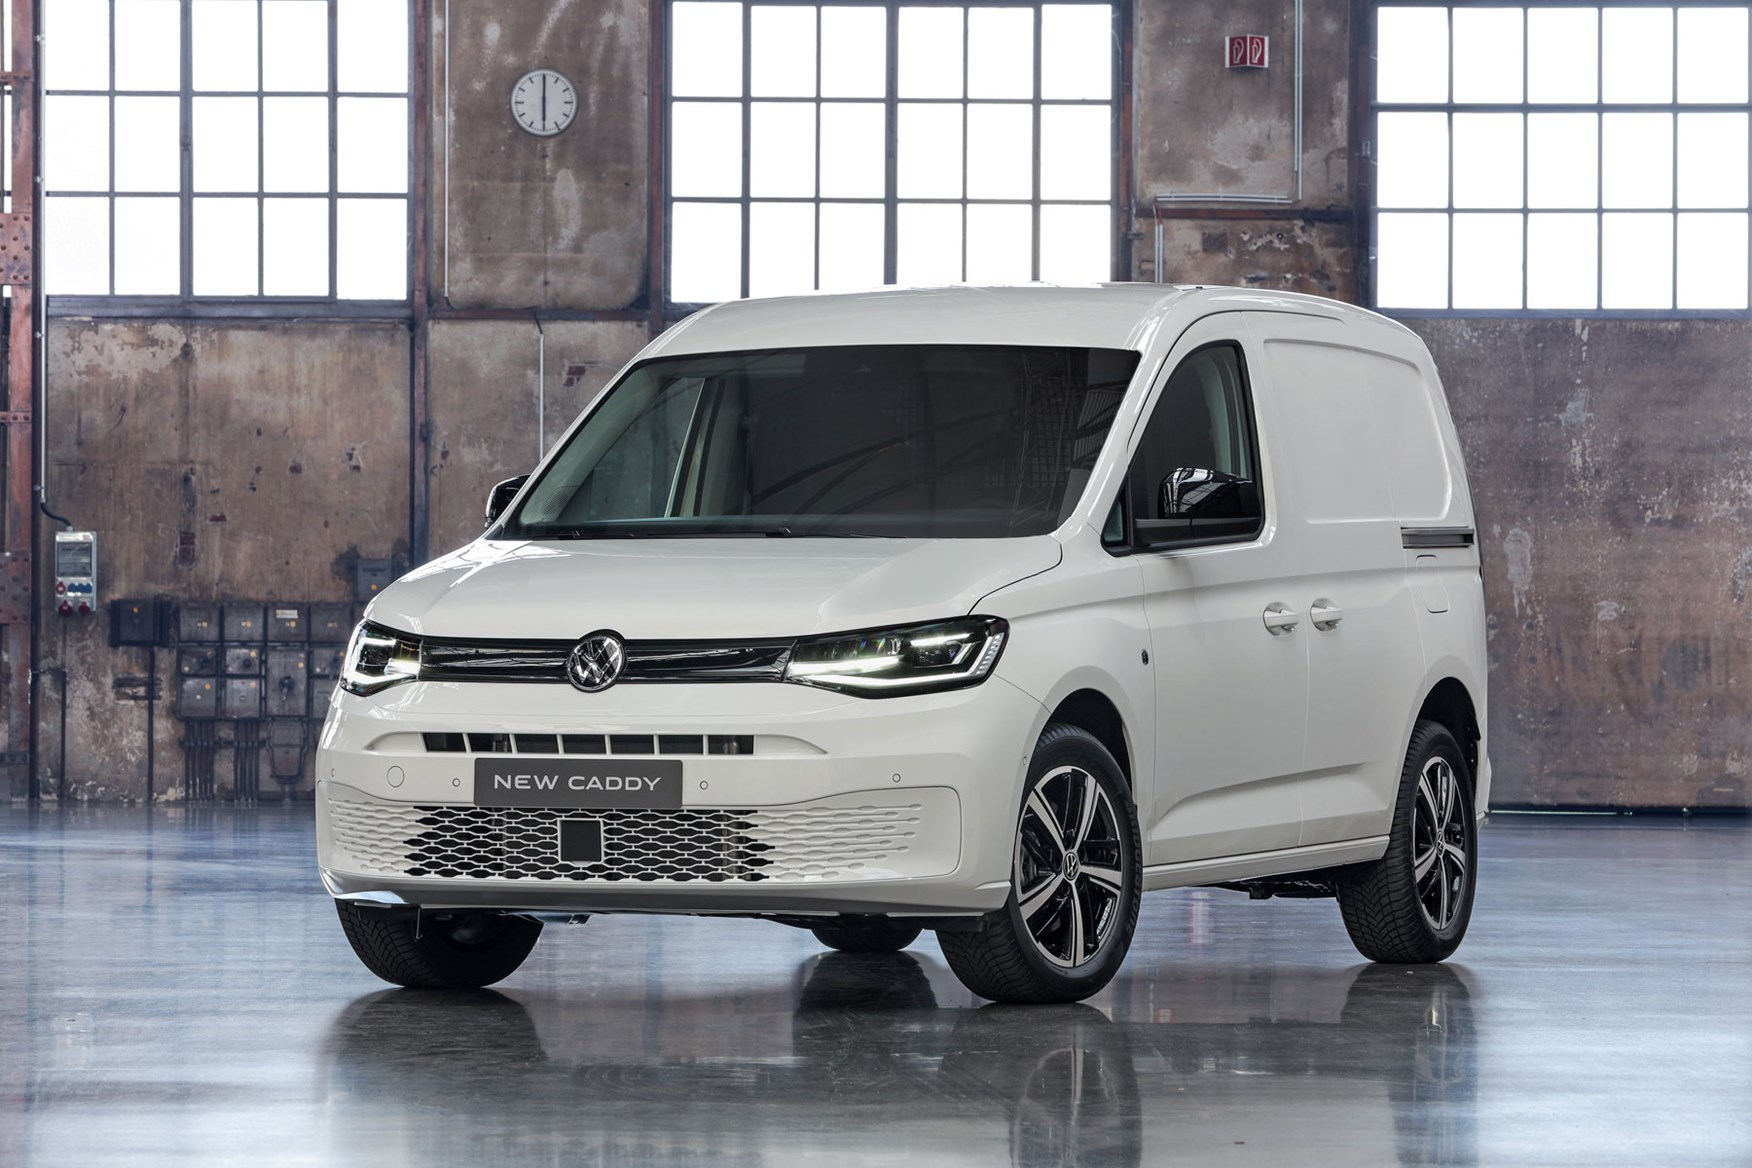 Volkswagen Caddy 5 - all-new model on sale in 2020-2021